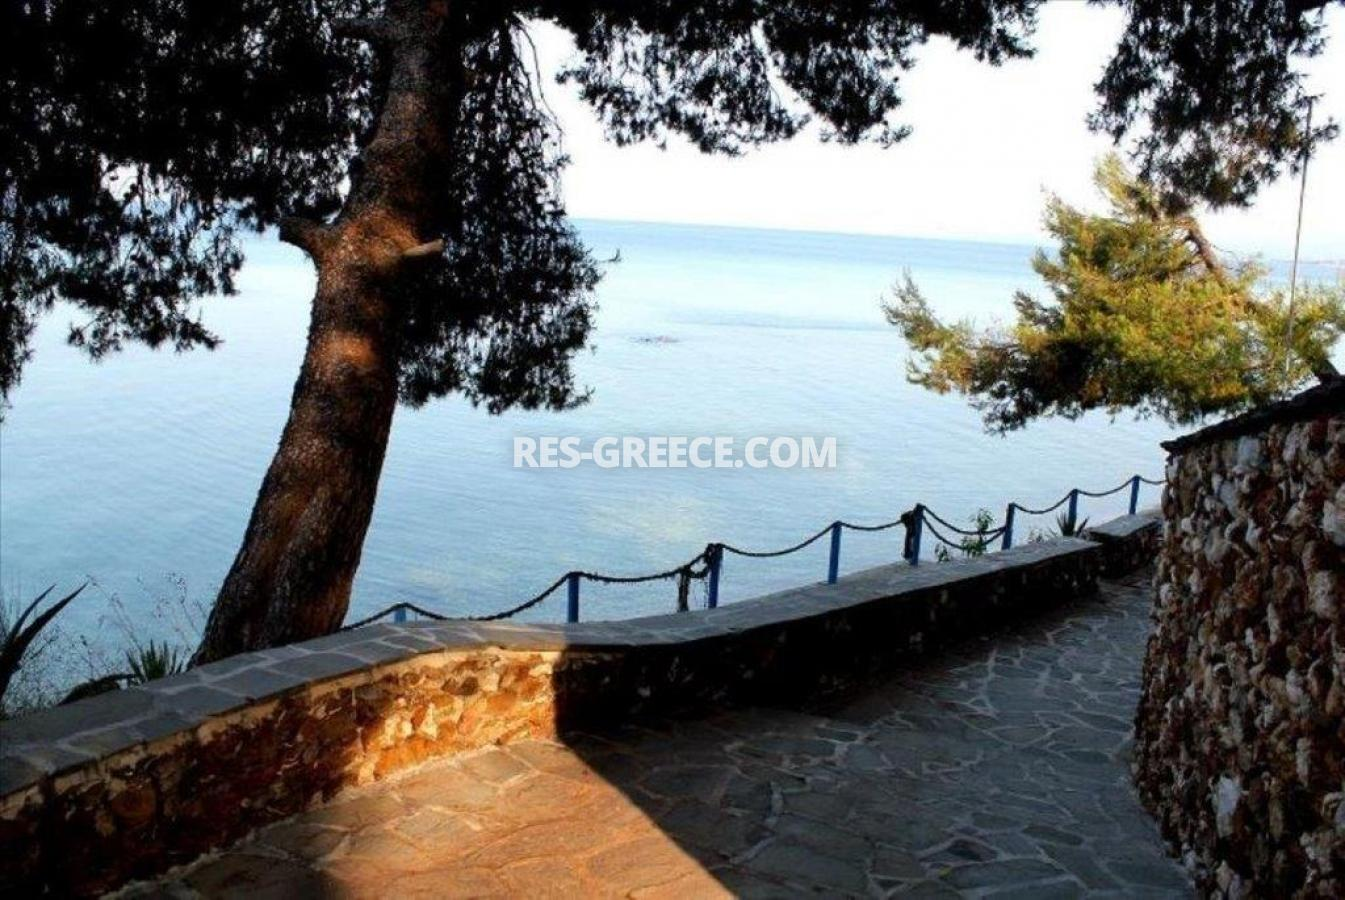 Ilectra, Halkidiki-Sithonia, Greece - cozy cottage with a pool by the sea - Photo 10